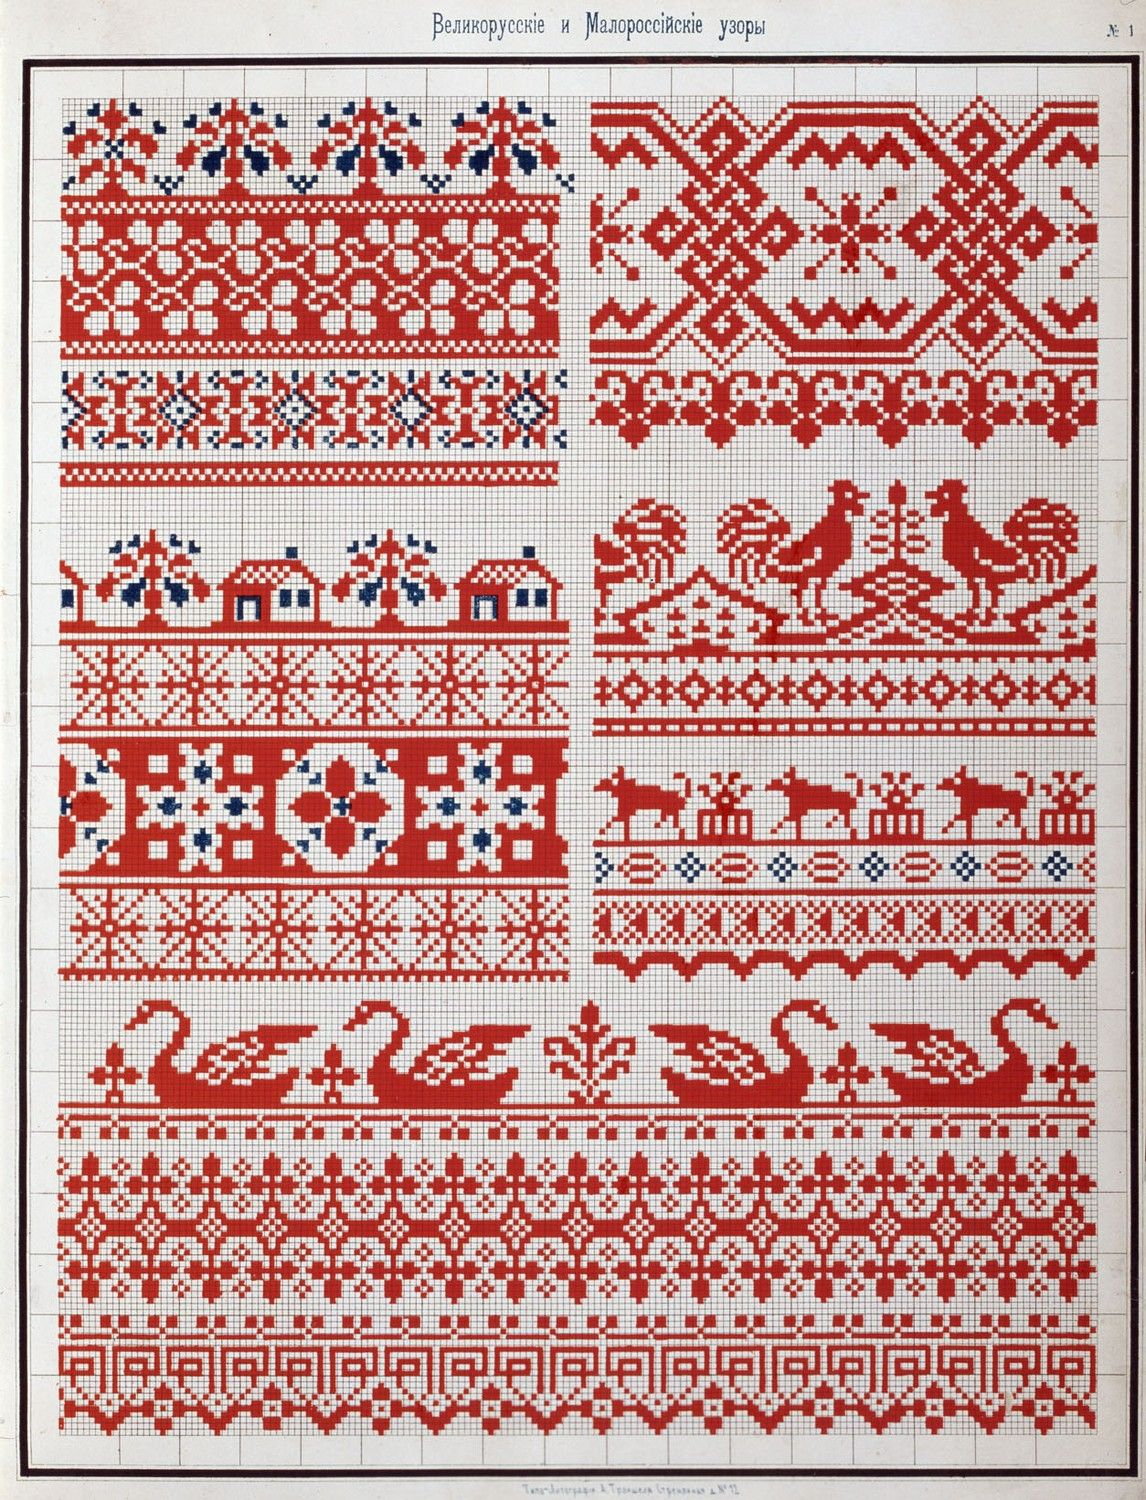 Russian embroidery patterns borders redwork rooster swan Схемы